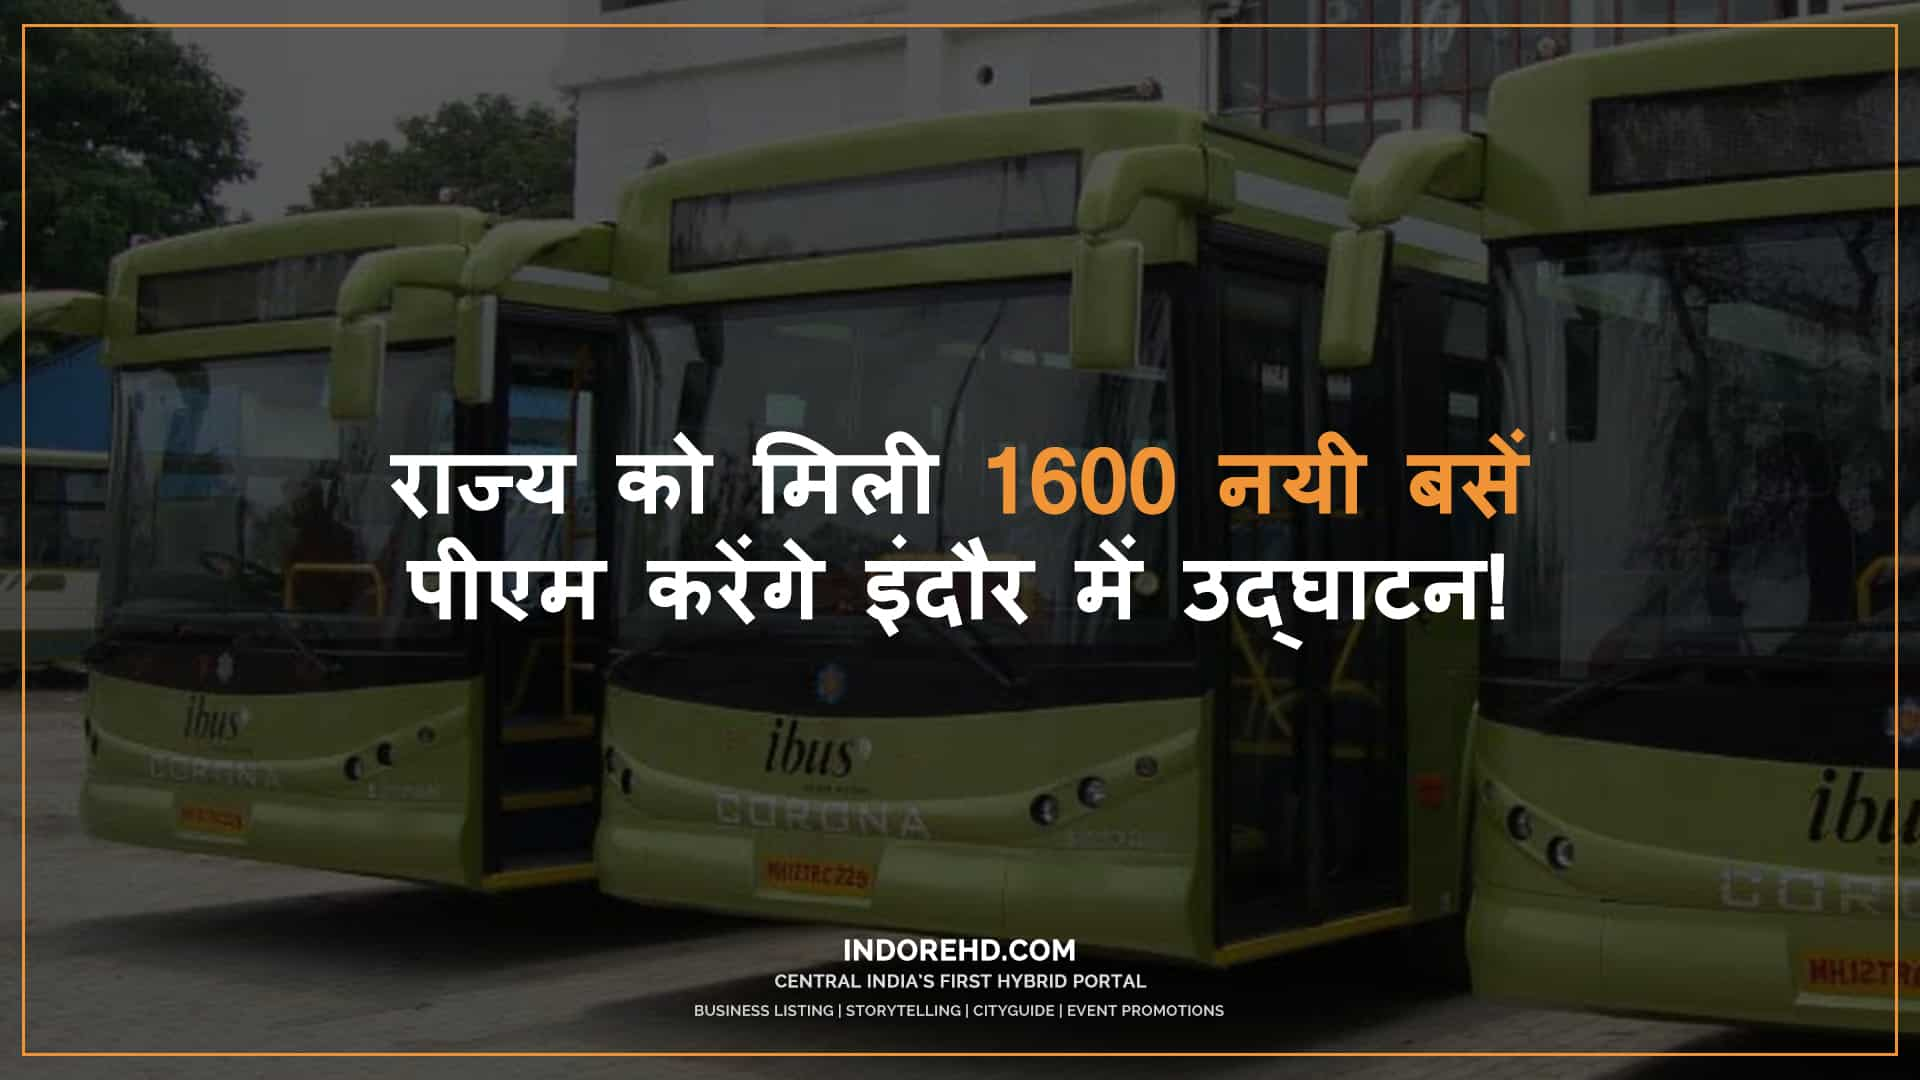 Public-Transport-buses-madhyapradesh-indorehd